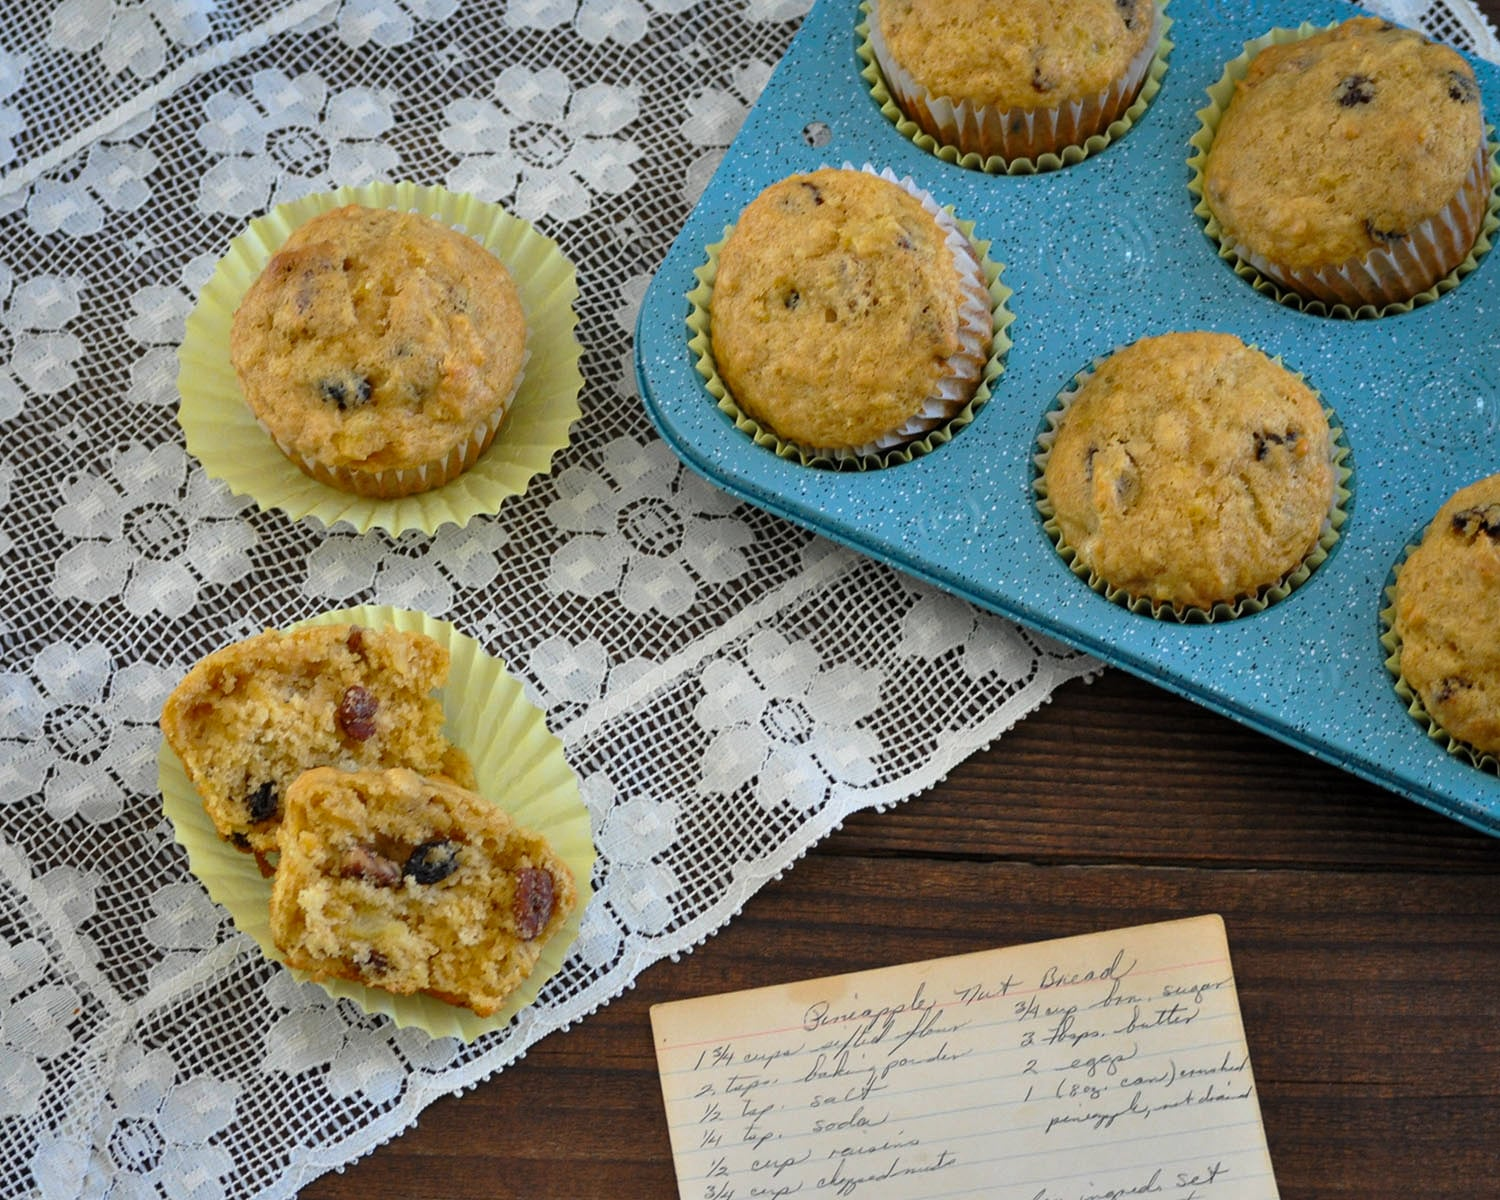 Just baked pineapple muffins on a doilie and a blue muffin tin next to an old recipe card.